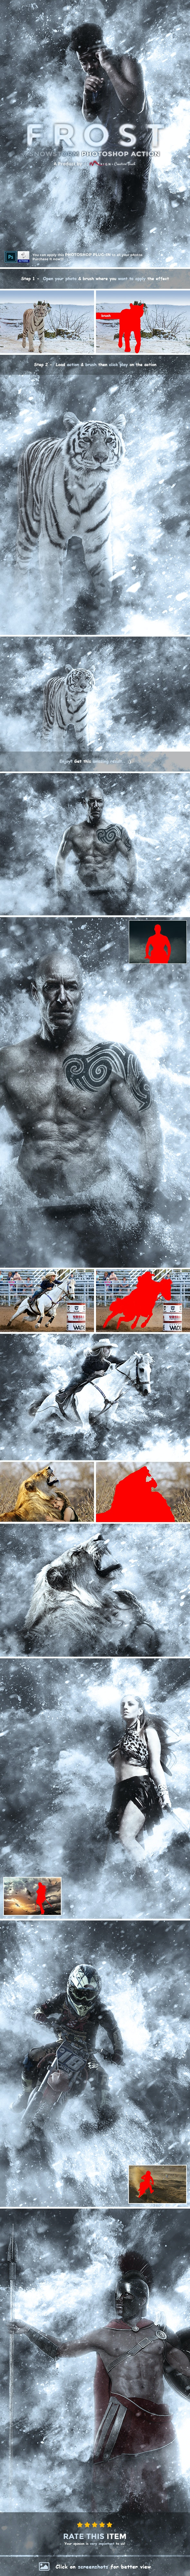 Frost - Snowstorm Photoshop Action - Photo Effects Actions